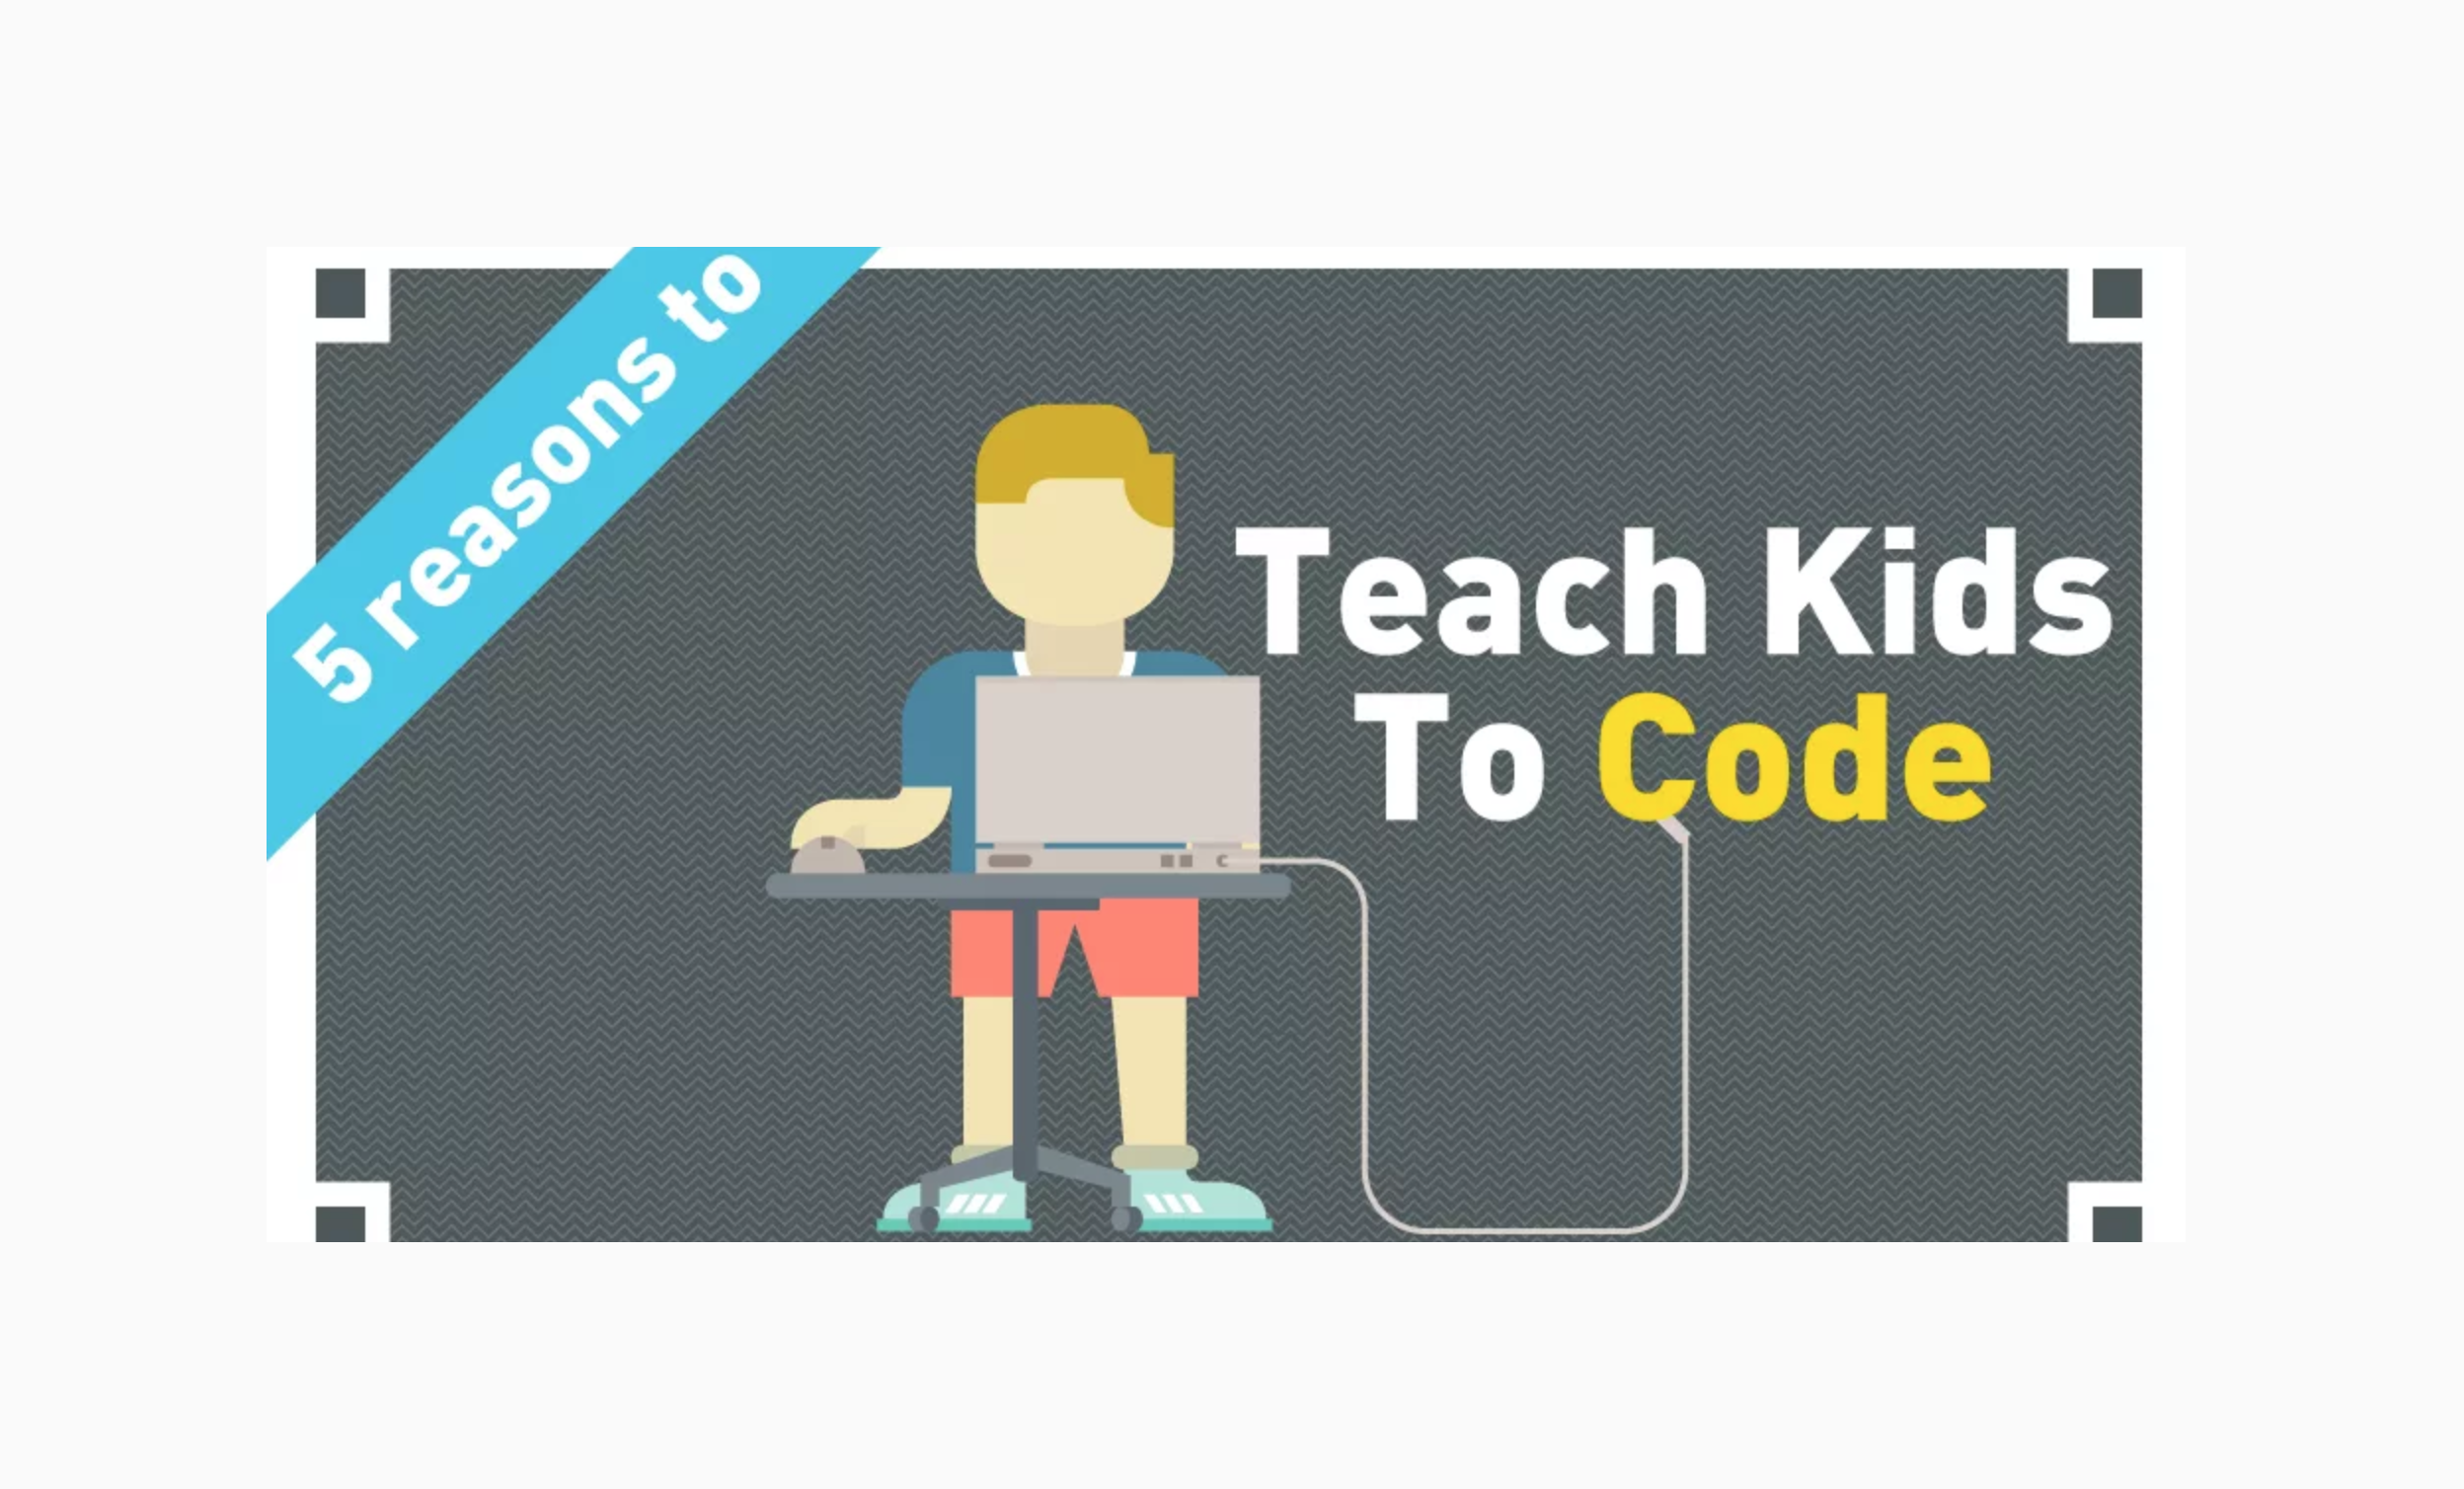 Teach kids to code - Digilearning